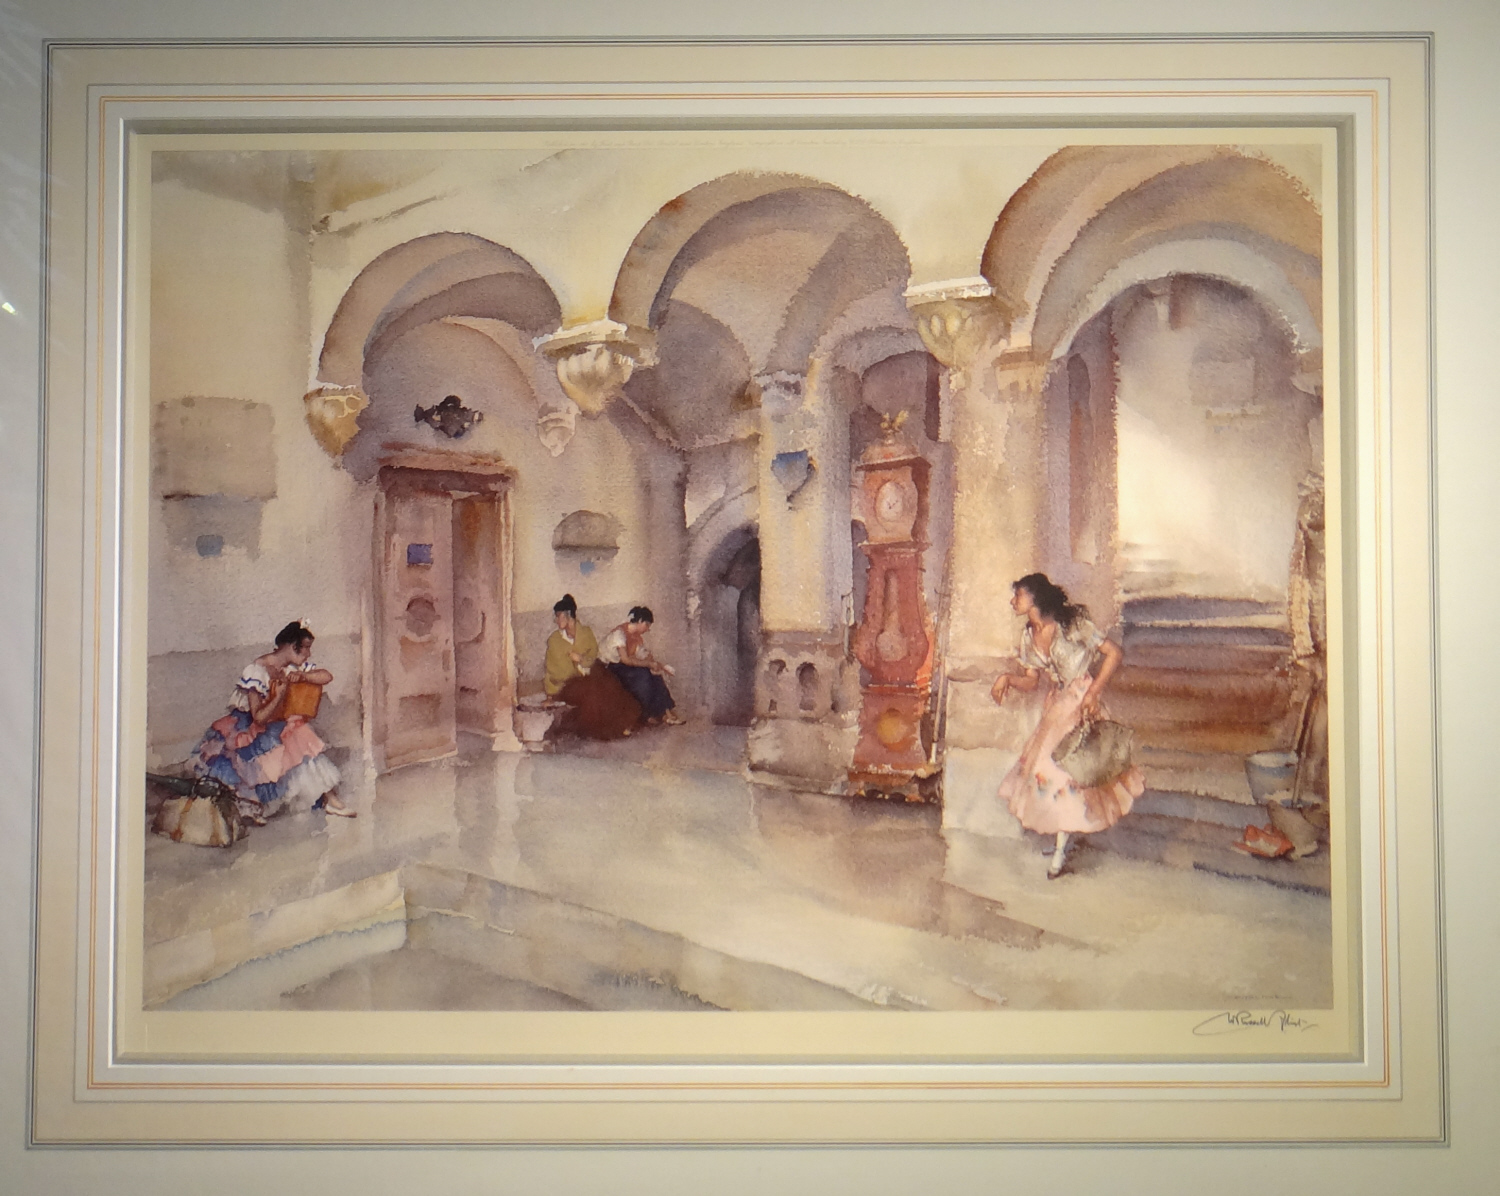 russell flint, la marie Manosque, signed limited edition print